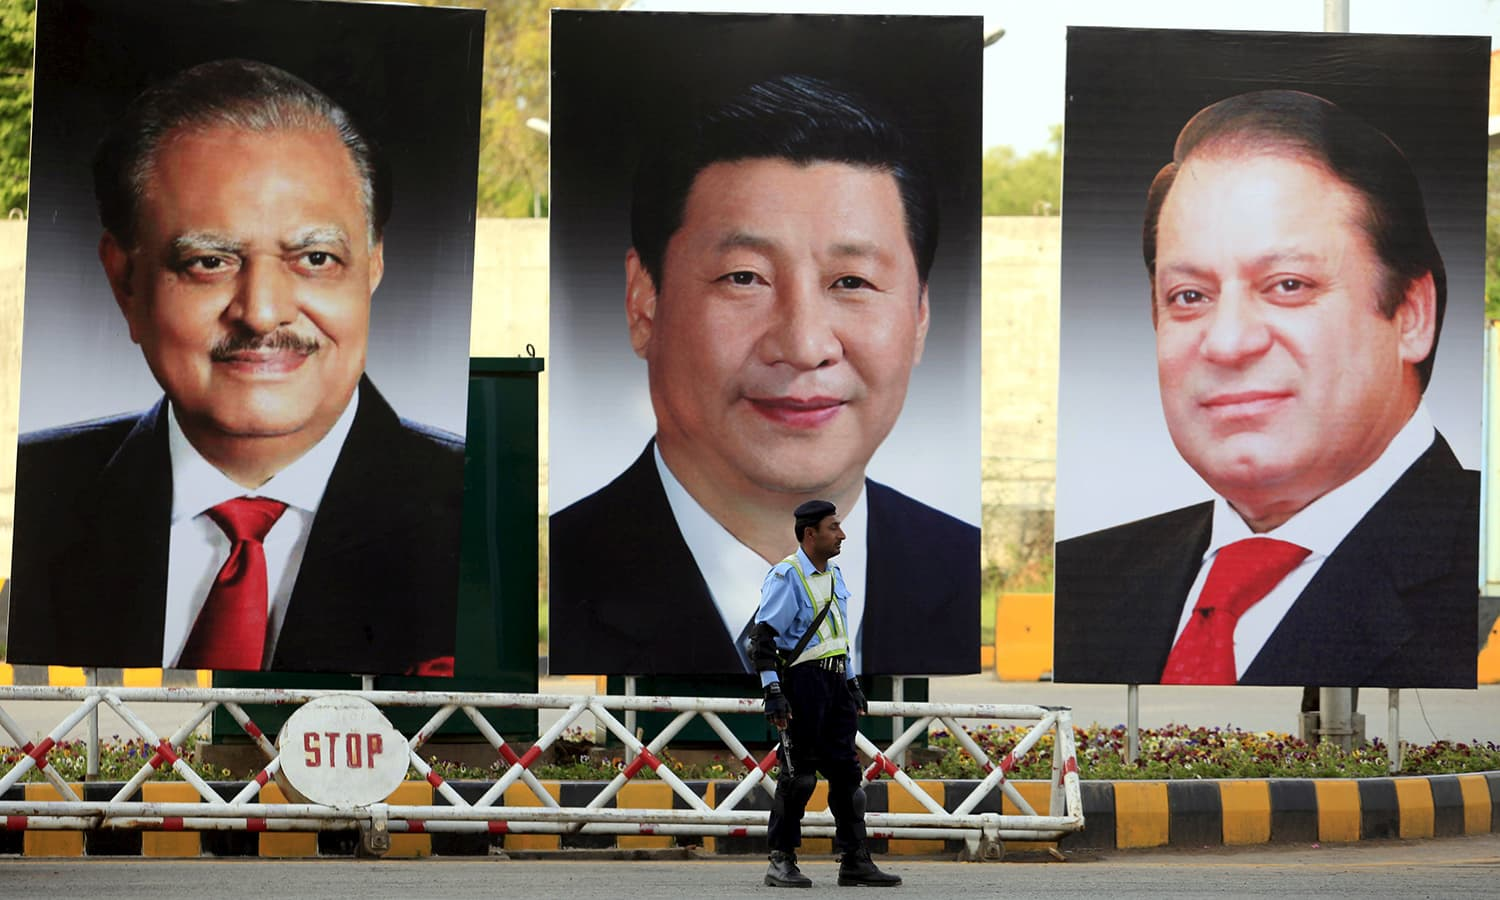 A policeman stands guard next to giant portraits of (L-R) Pakistan's President Mamnoon Hussain, China's President Xi Jinping, and Pakistan's Prime Minister Nawaz Sharif, displayed along a road ahead of Xi's visit to Islamabad April 19, 2015.— Reuters